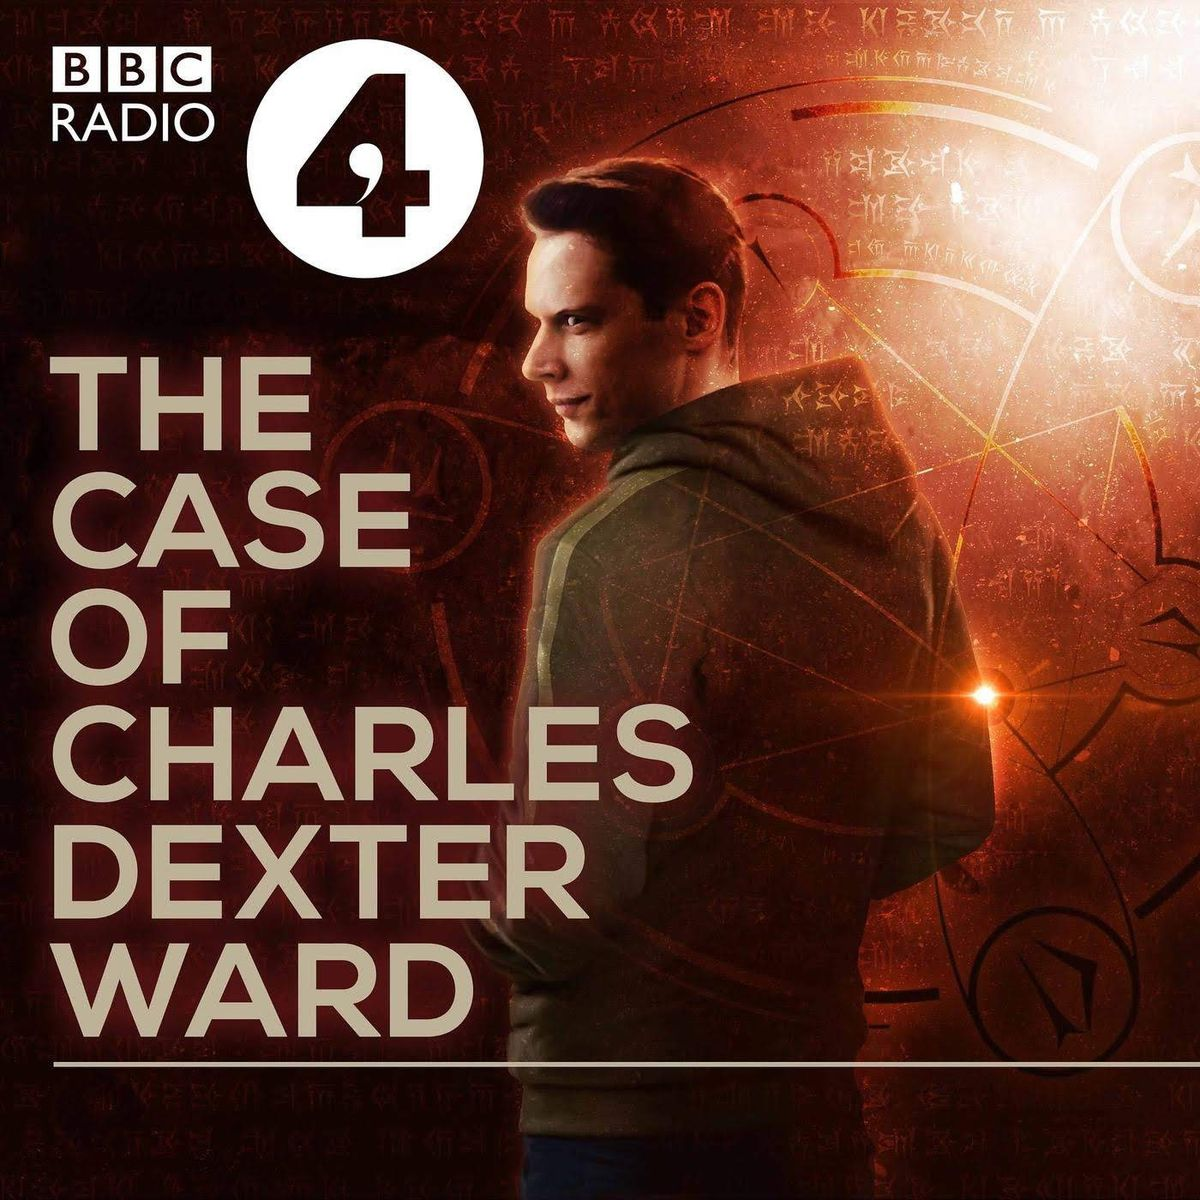 The Case of Charles Dexter Ward podcast is like Serial mixed with